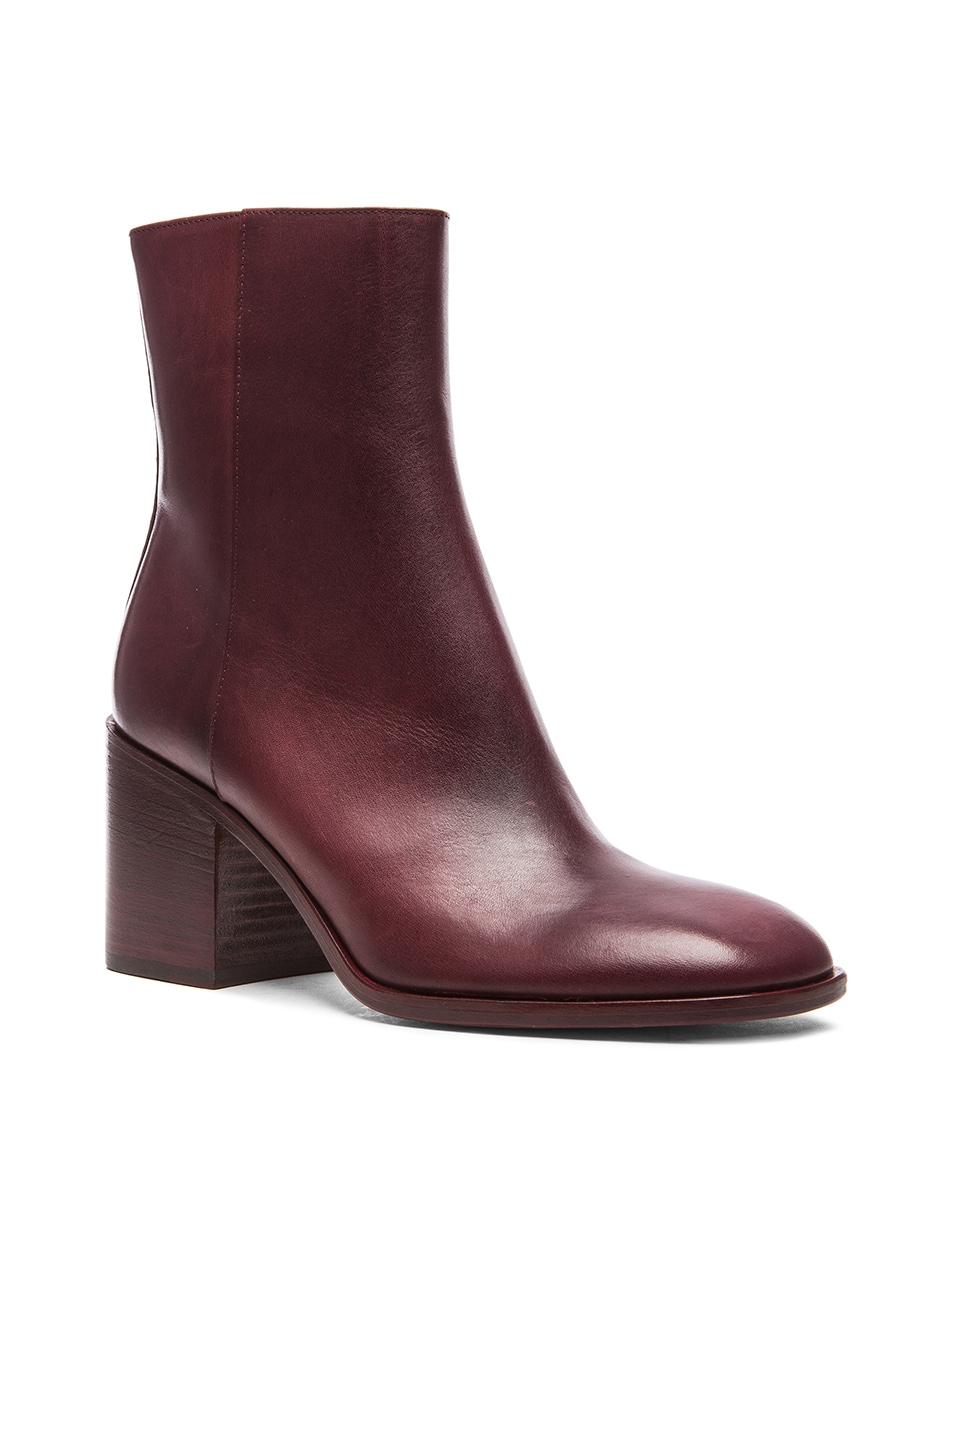 Image 2 of Maison Margiela Waxed Leather Booties in Bordeaux